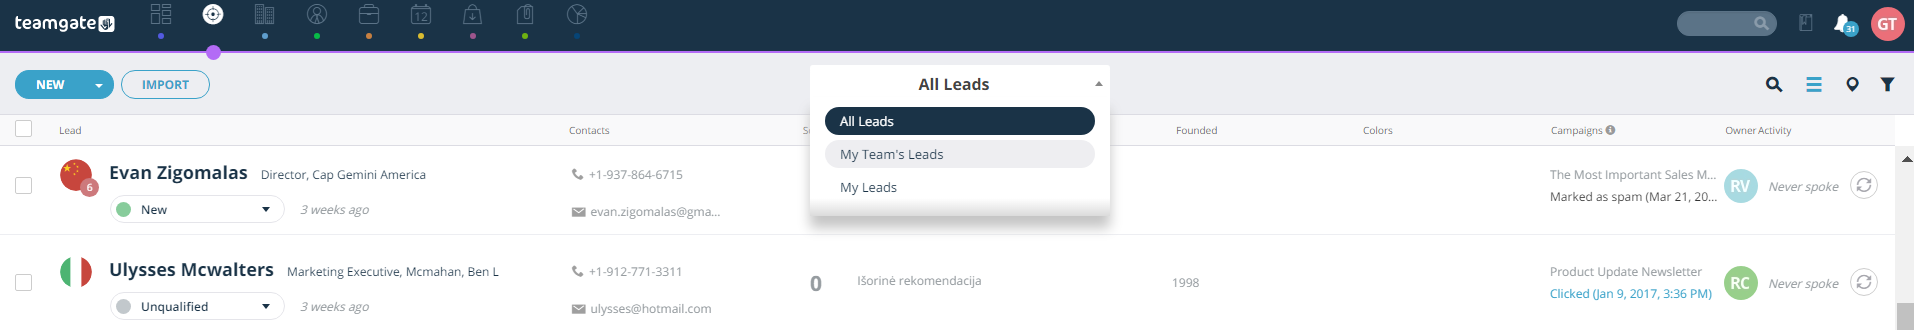 all-leads-my-leads-teams-leads-teamgate.png